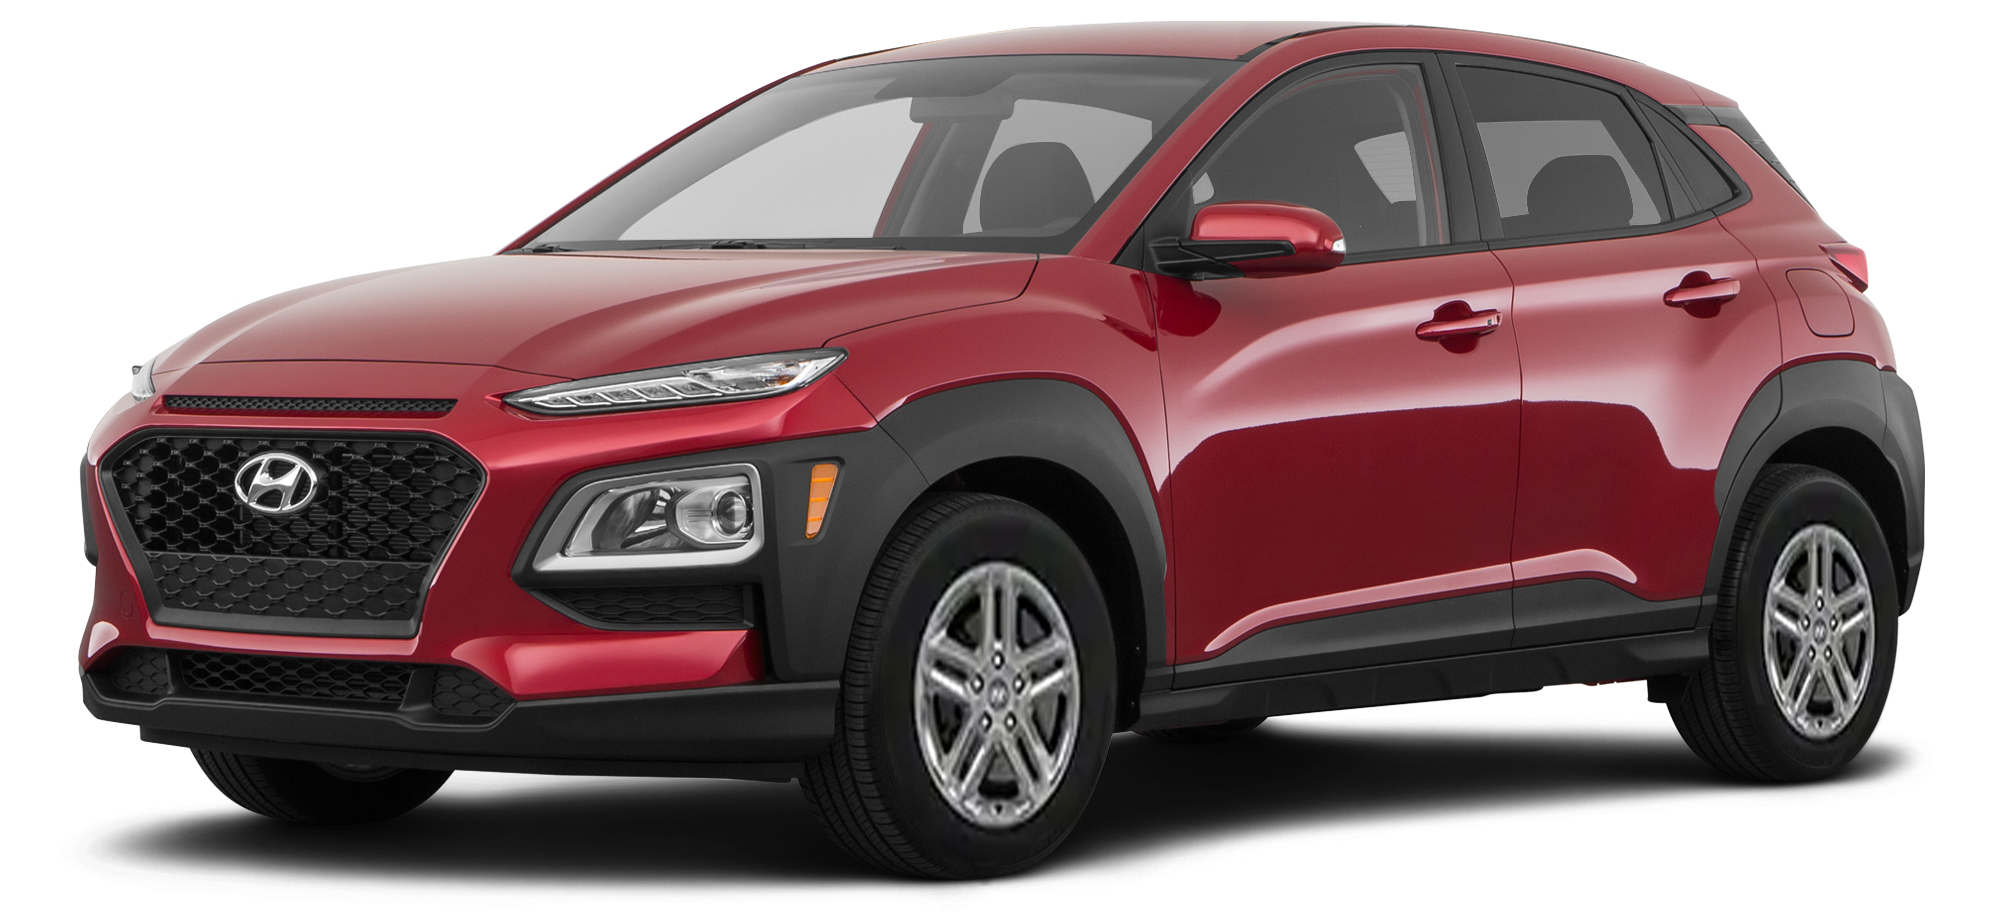 2019 hyundai kona incentives specials offers in moreno valley ca. Black Bedroom Furniture Sets. Home Design Ideas